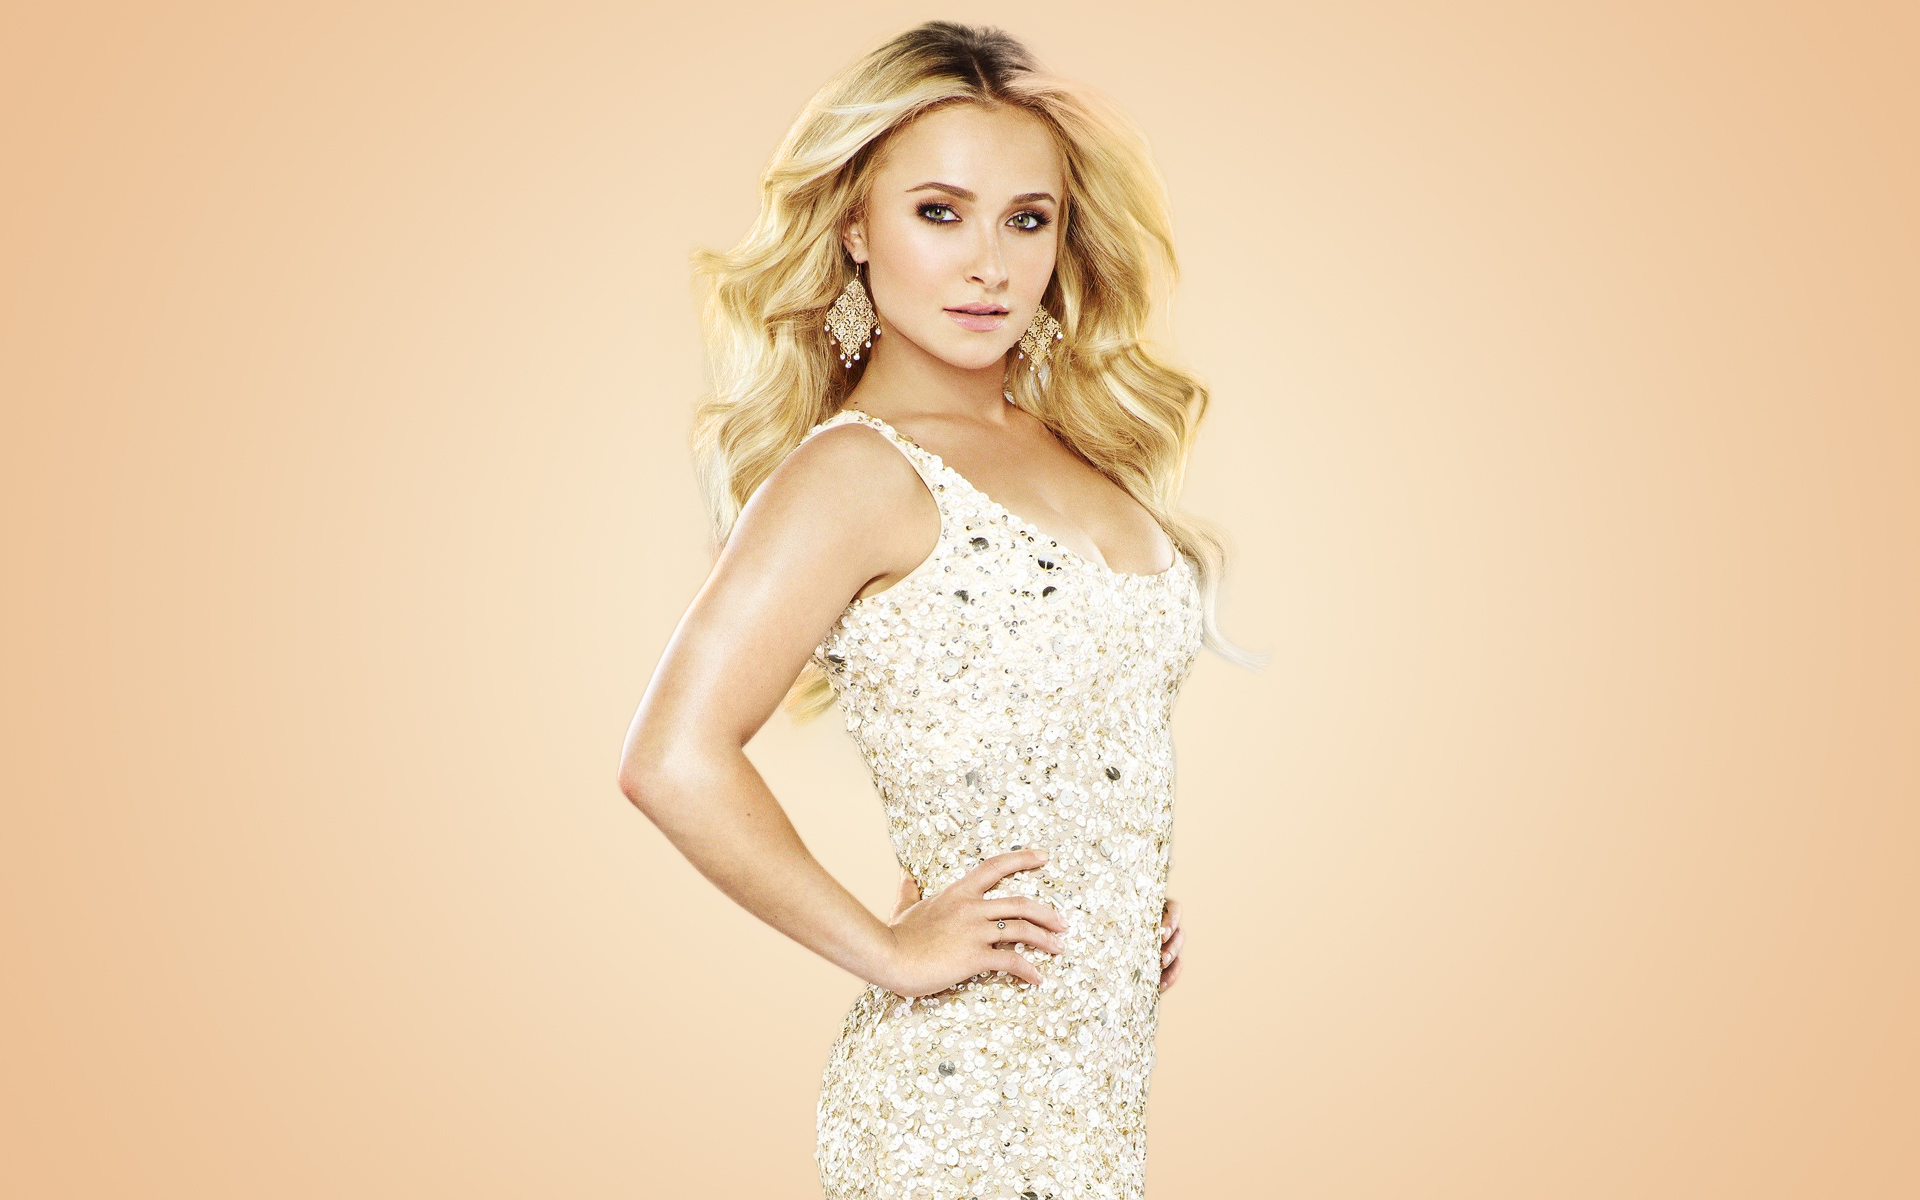 Hayden Panettiere Wallpapers High Resolution and Quality Download